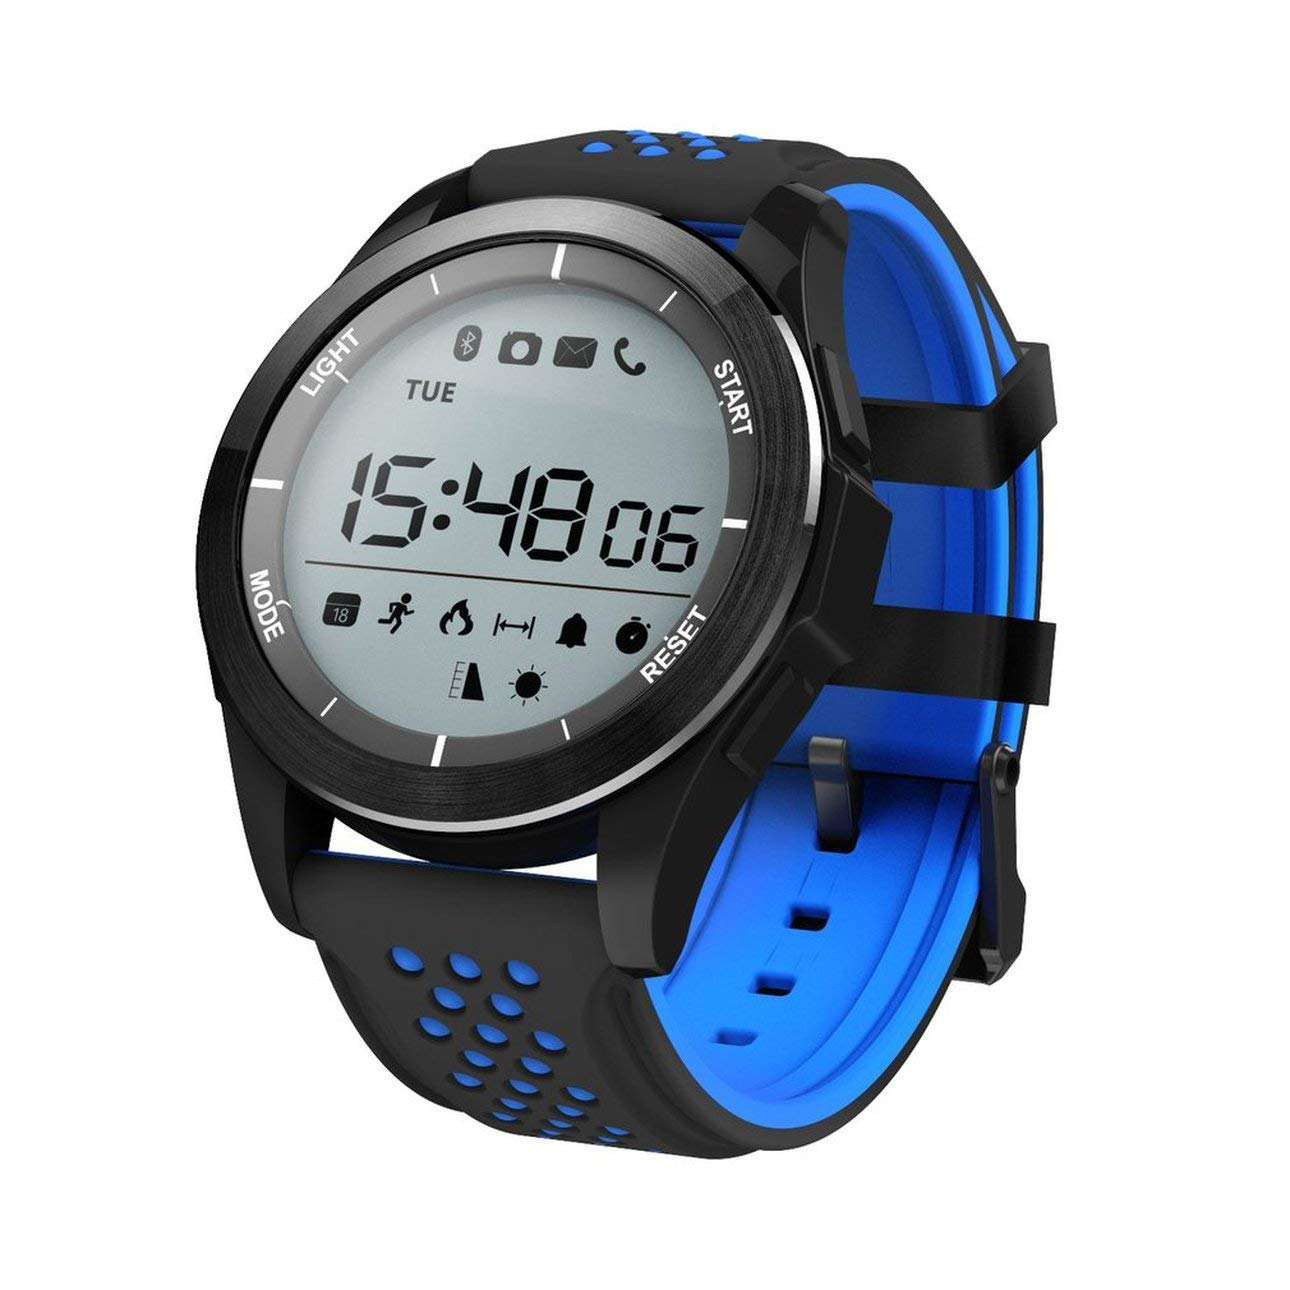 Ballylelly NO.1 F3 Sports Smartwatch Rotatable Dial 30m ...